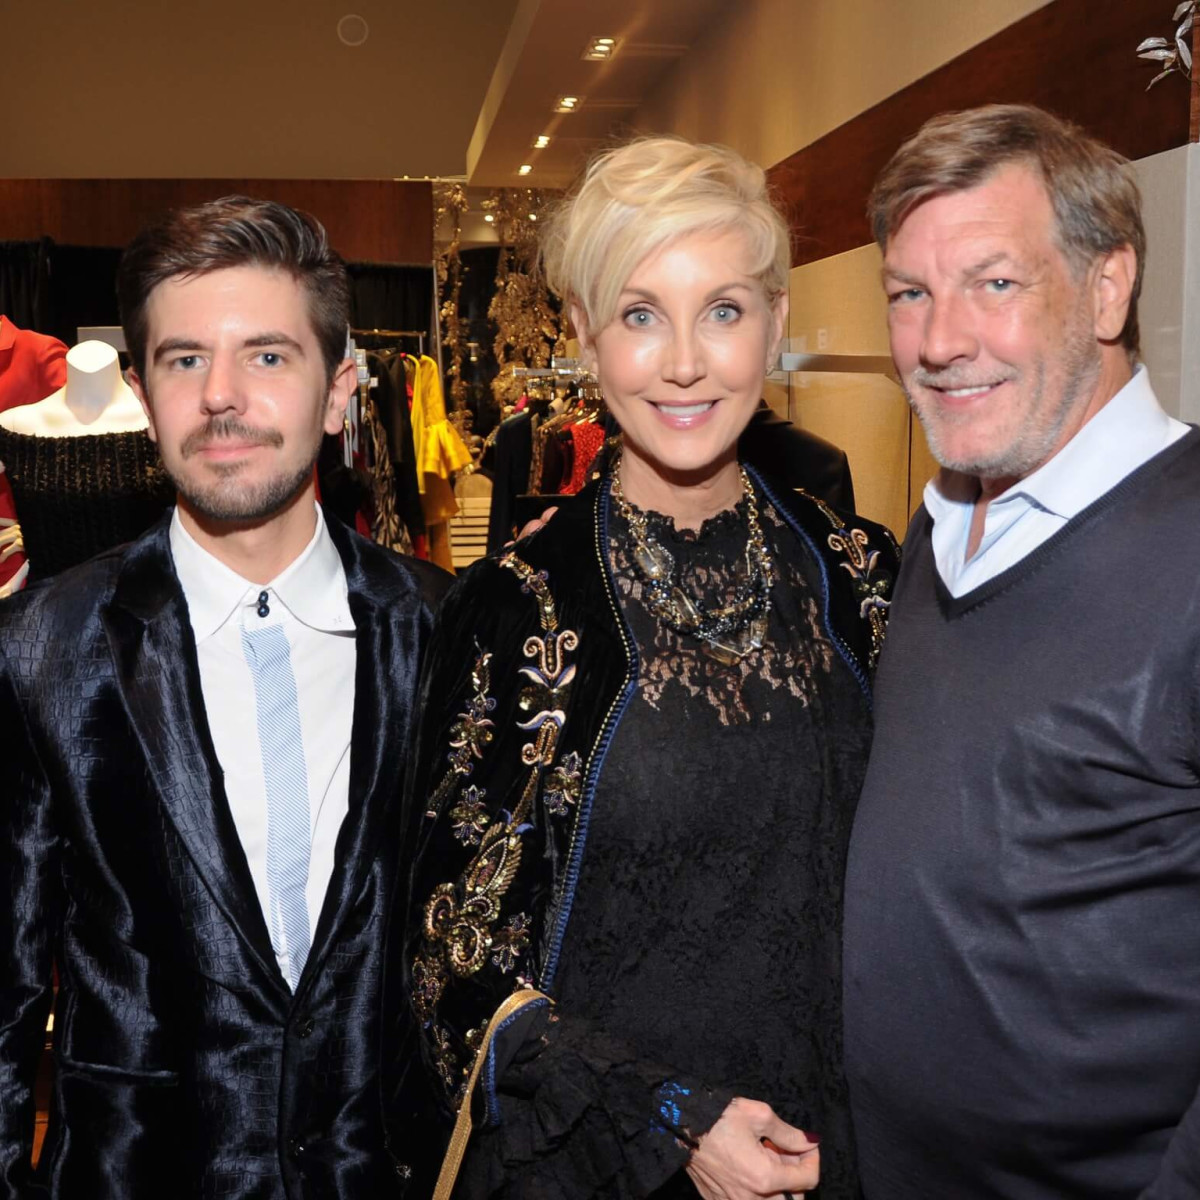 Lennart Kulke, Jerri Moore, Neal Hamil at Christian Siriano show at Elizabeth Anthony